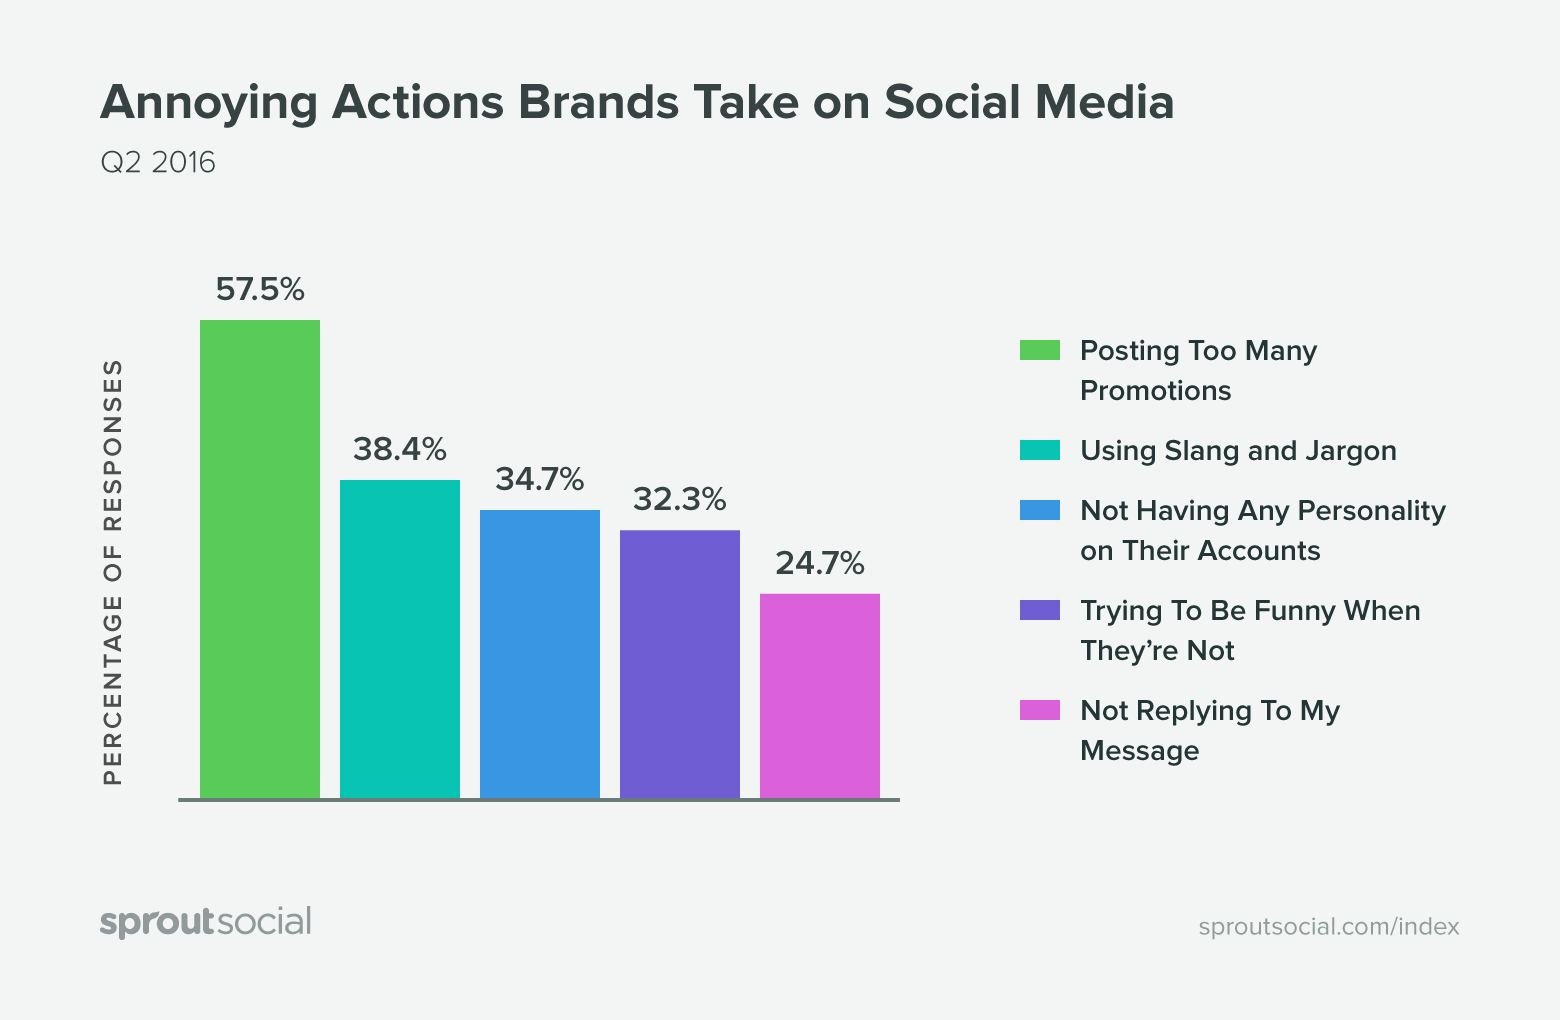 sprout social q3 2016 index annoying actions